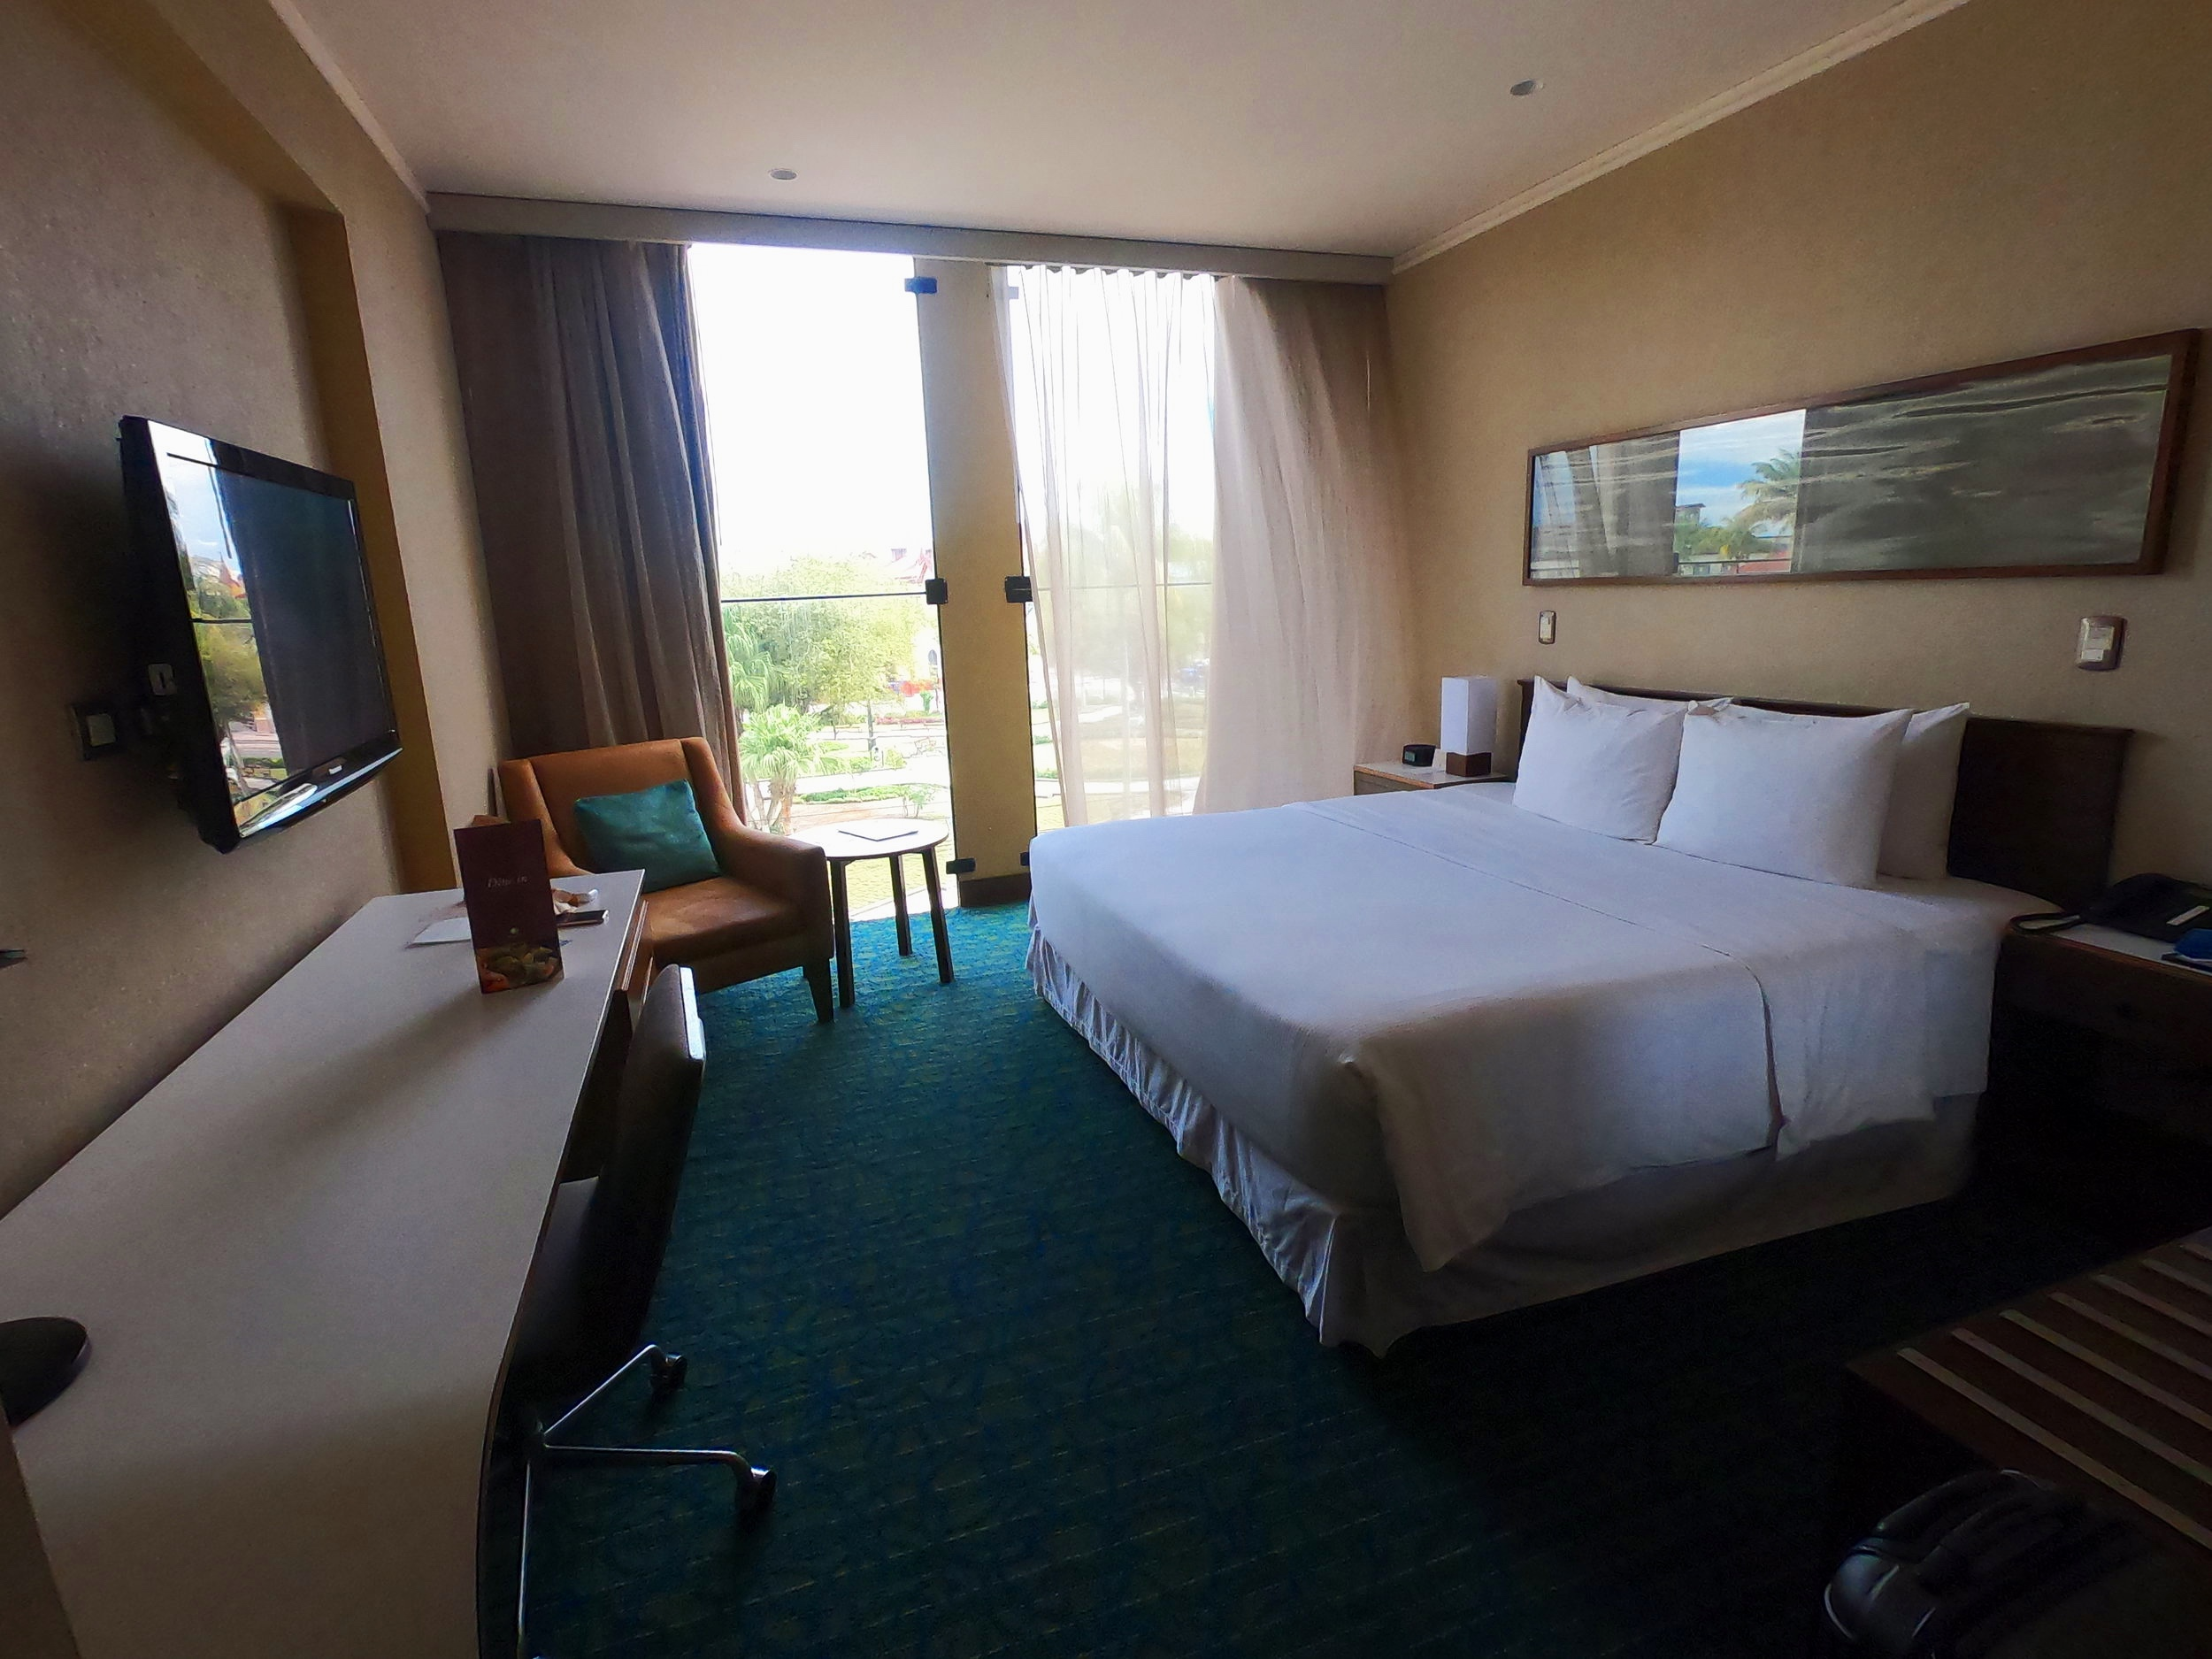 Hilton Iquitos Rooms